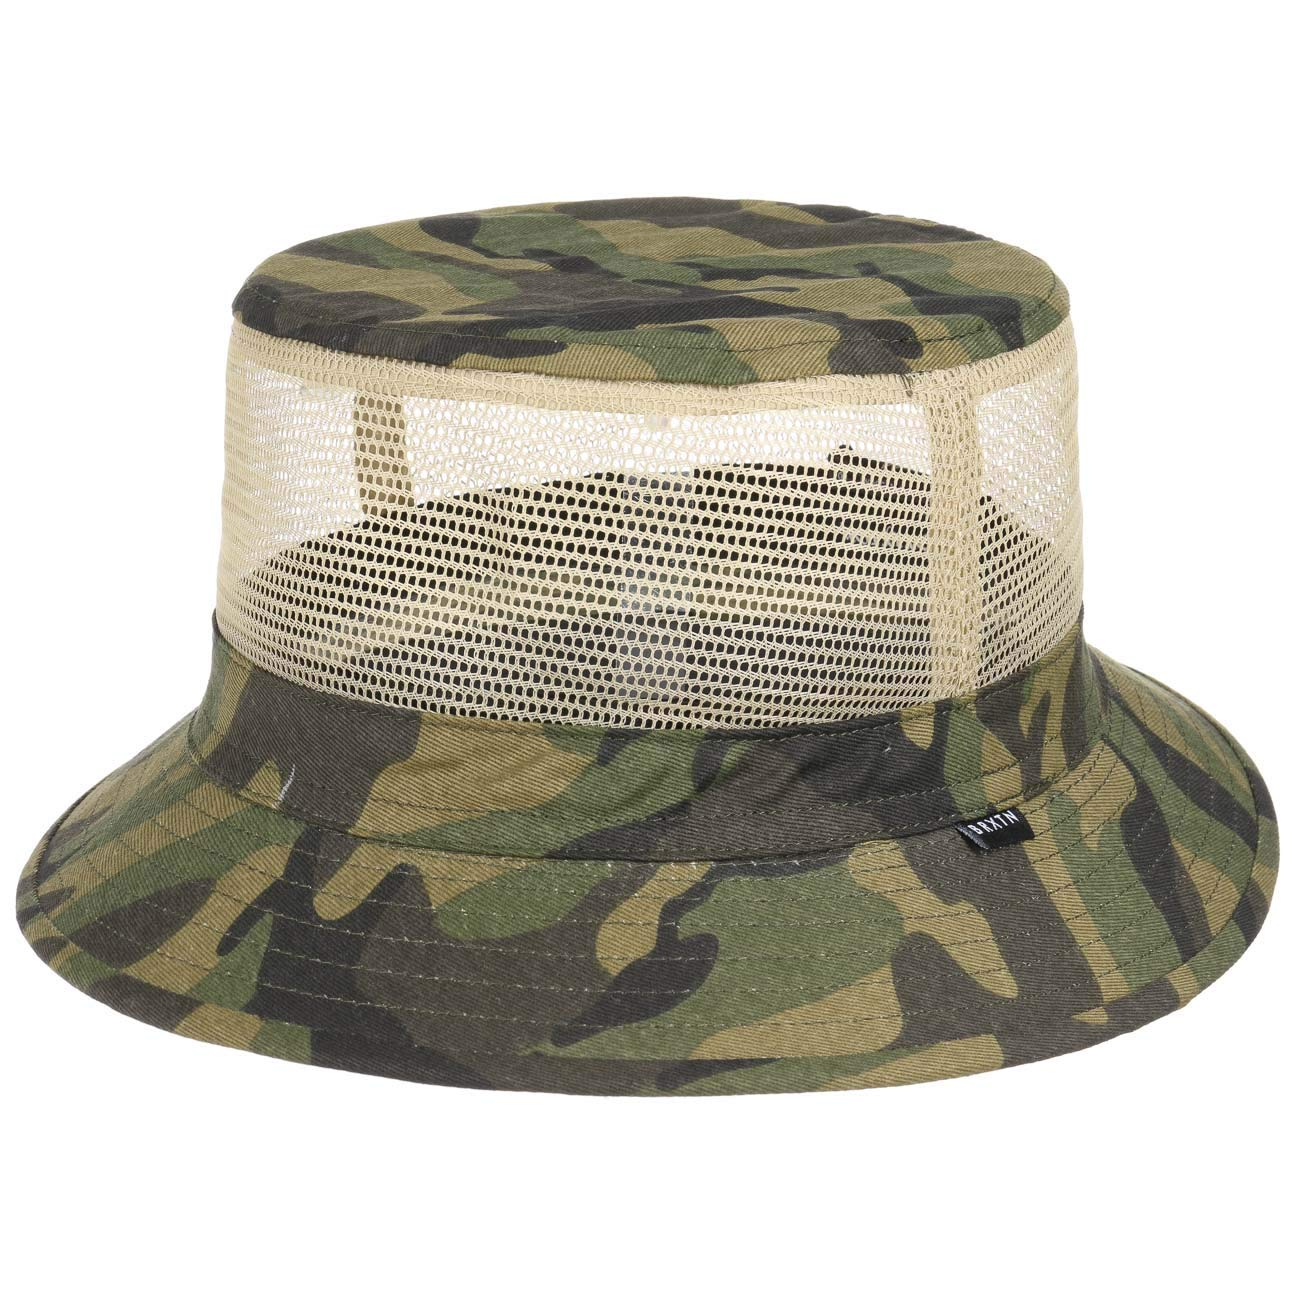 8952b66a Brixton Men's's Hardy Short Brim Mesh Bucket Hat Newsie Cap: Amazon.co.uk:  Clothing